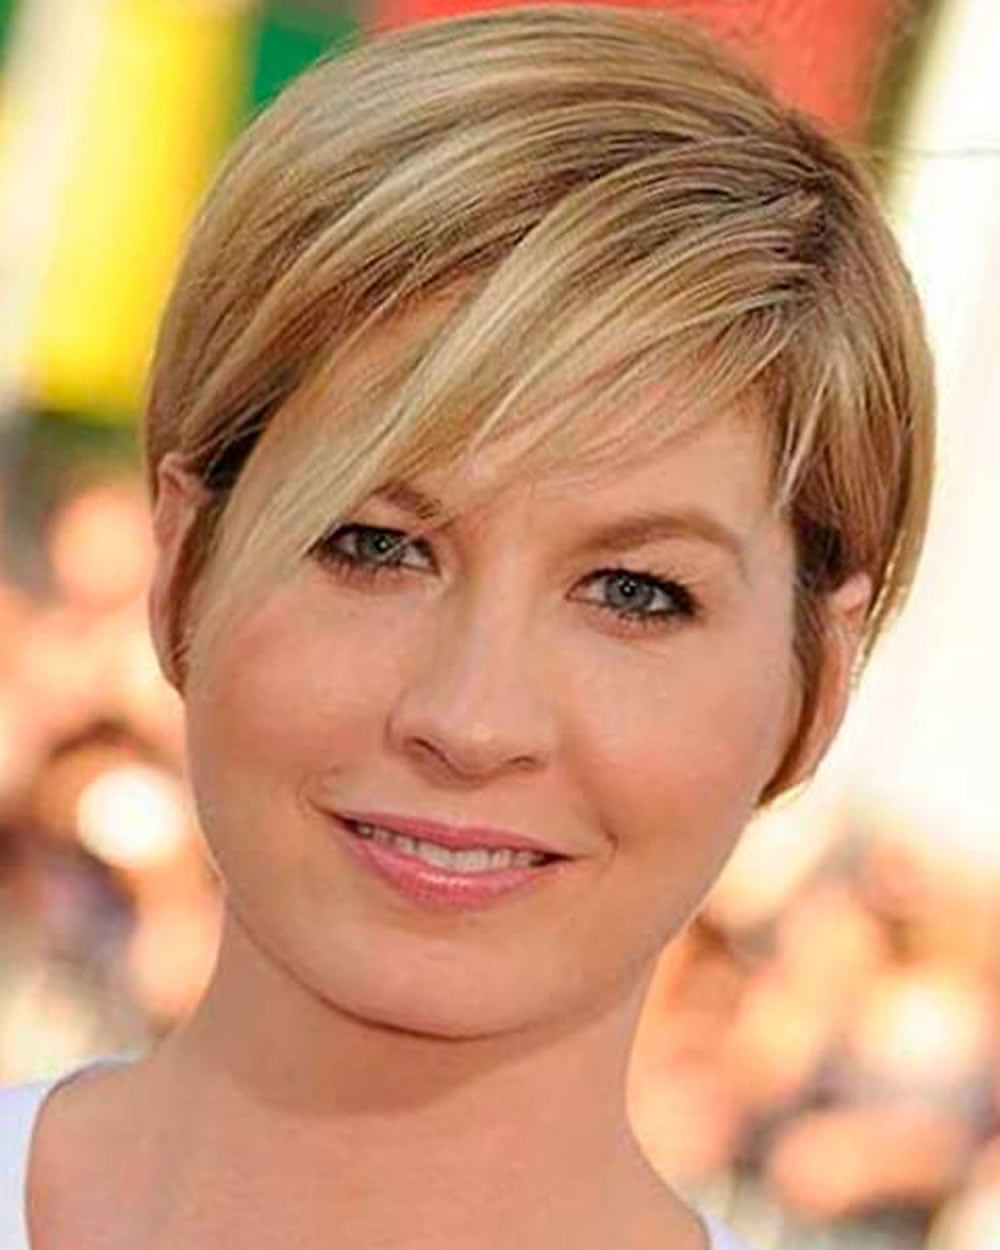 Hairstyles For Thin Fine Hair Round Face: Pixie Haircuts For Thin Hair And Round Faces